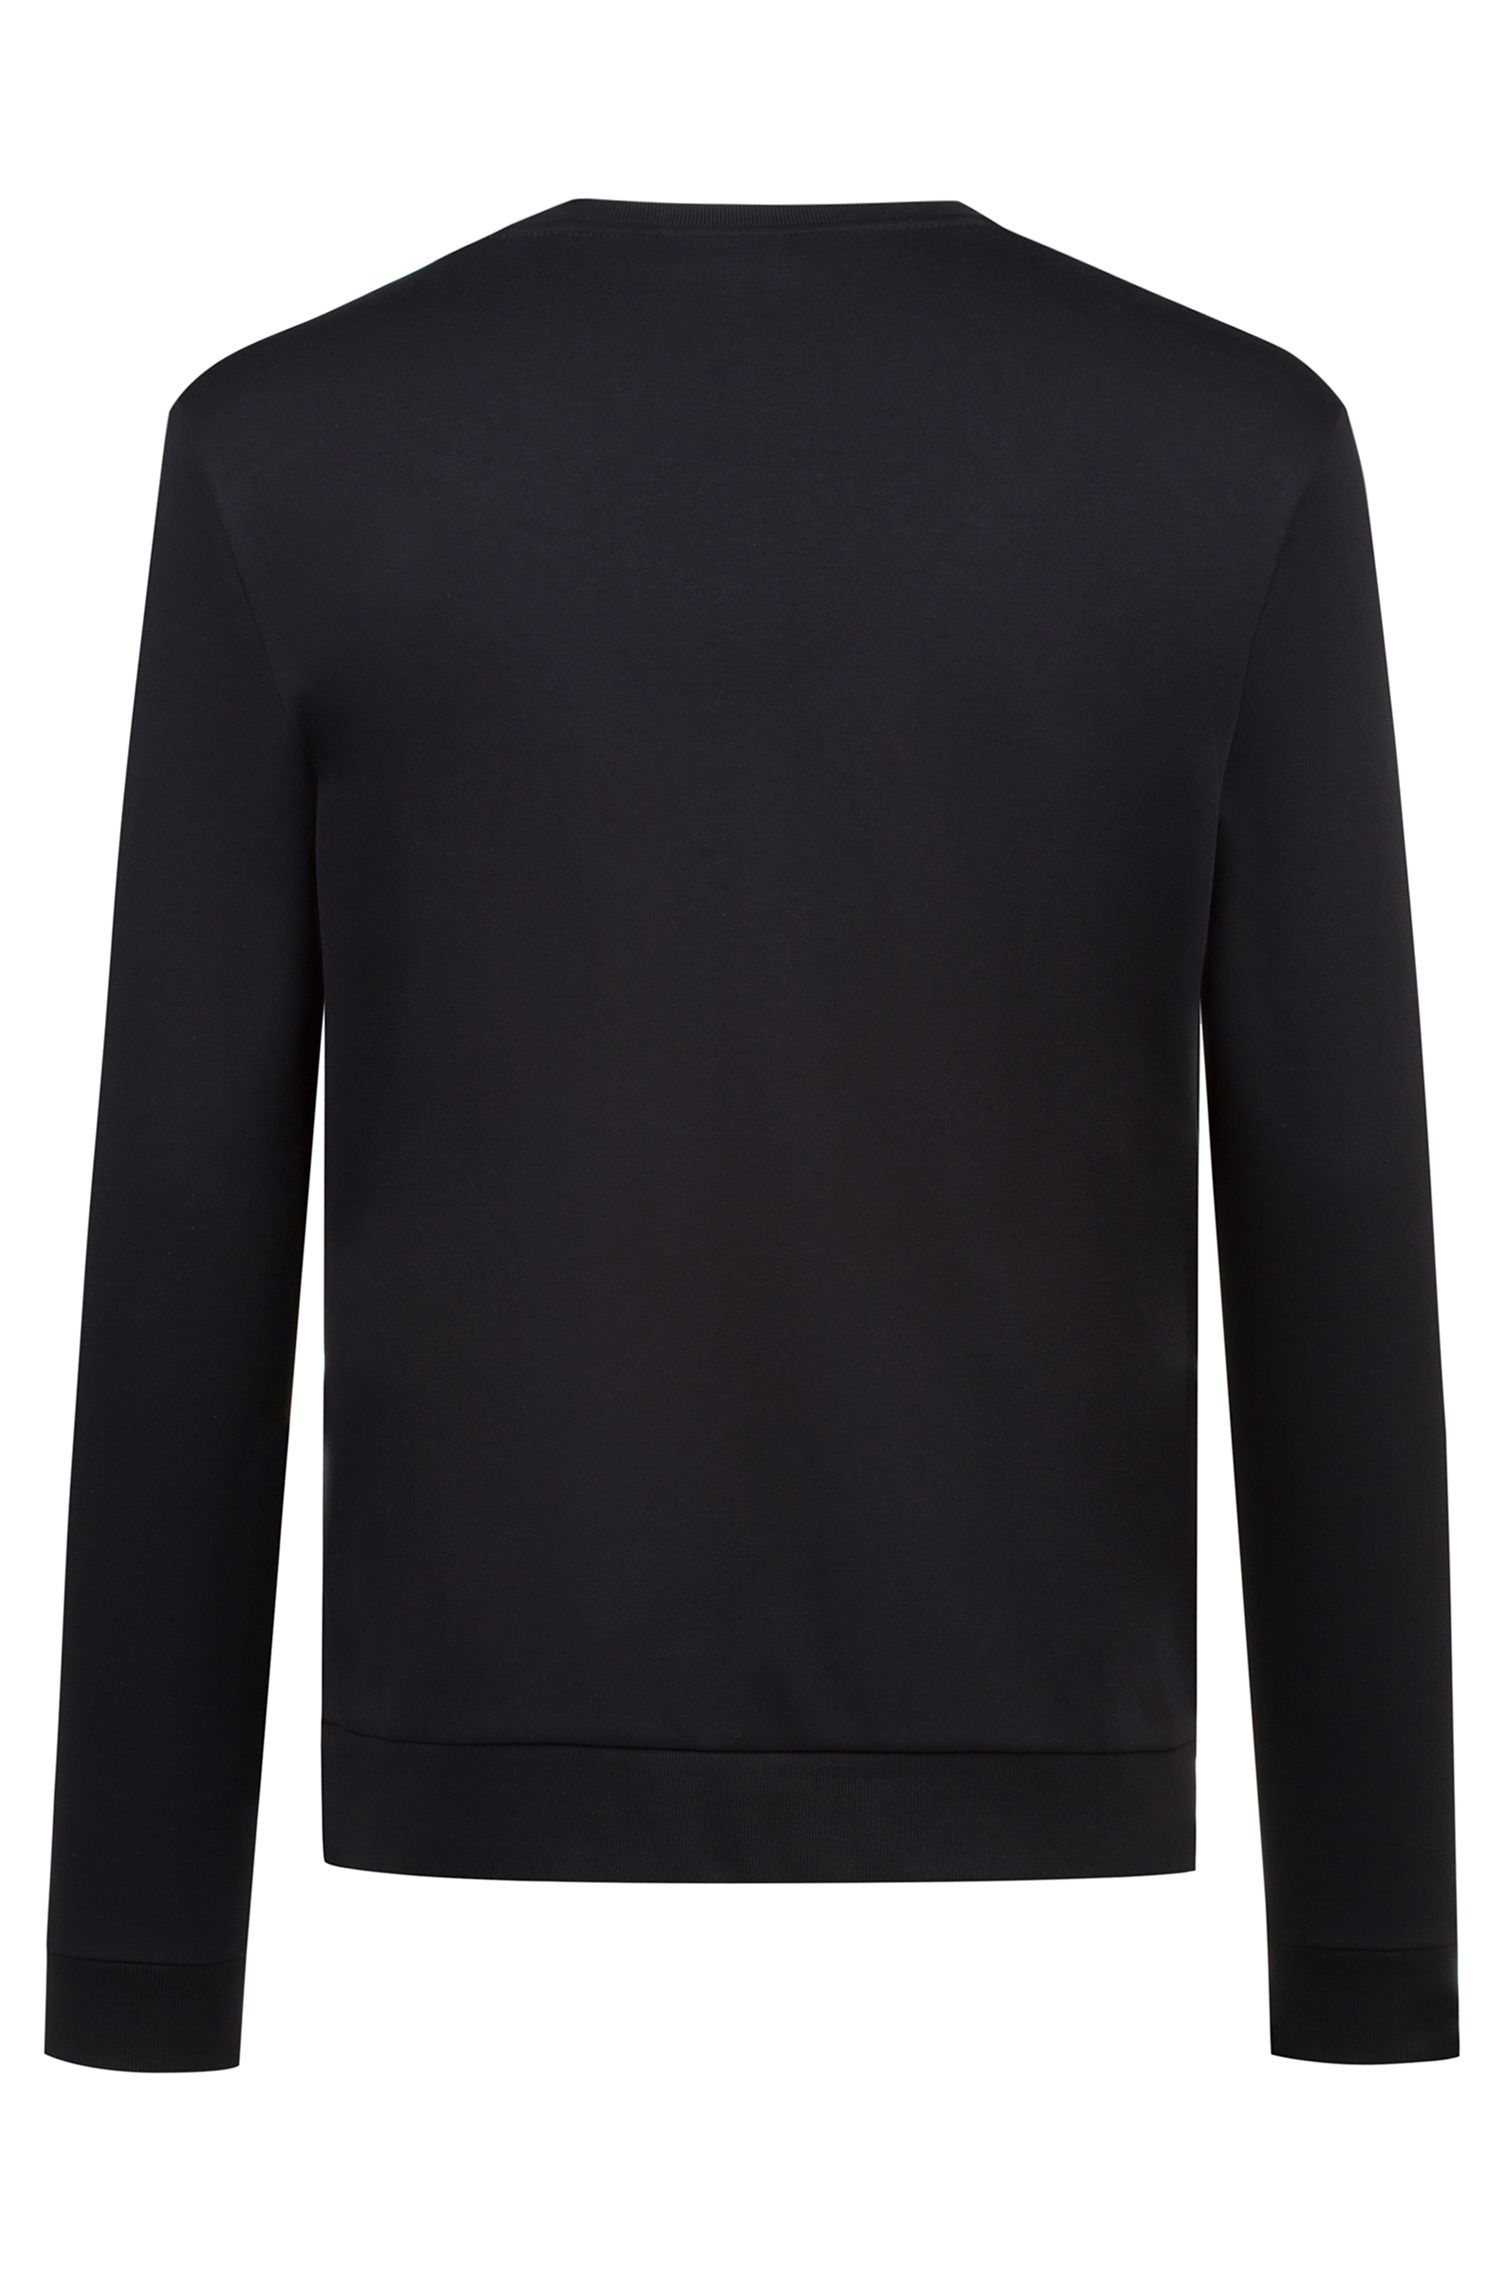 Crew-neck sweatshirt in pure cotton with reverse logo, Black